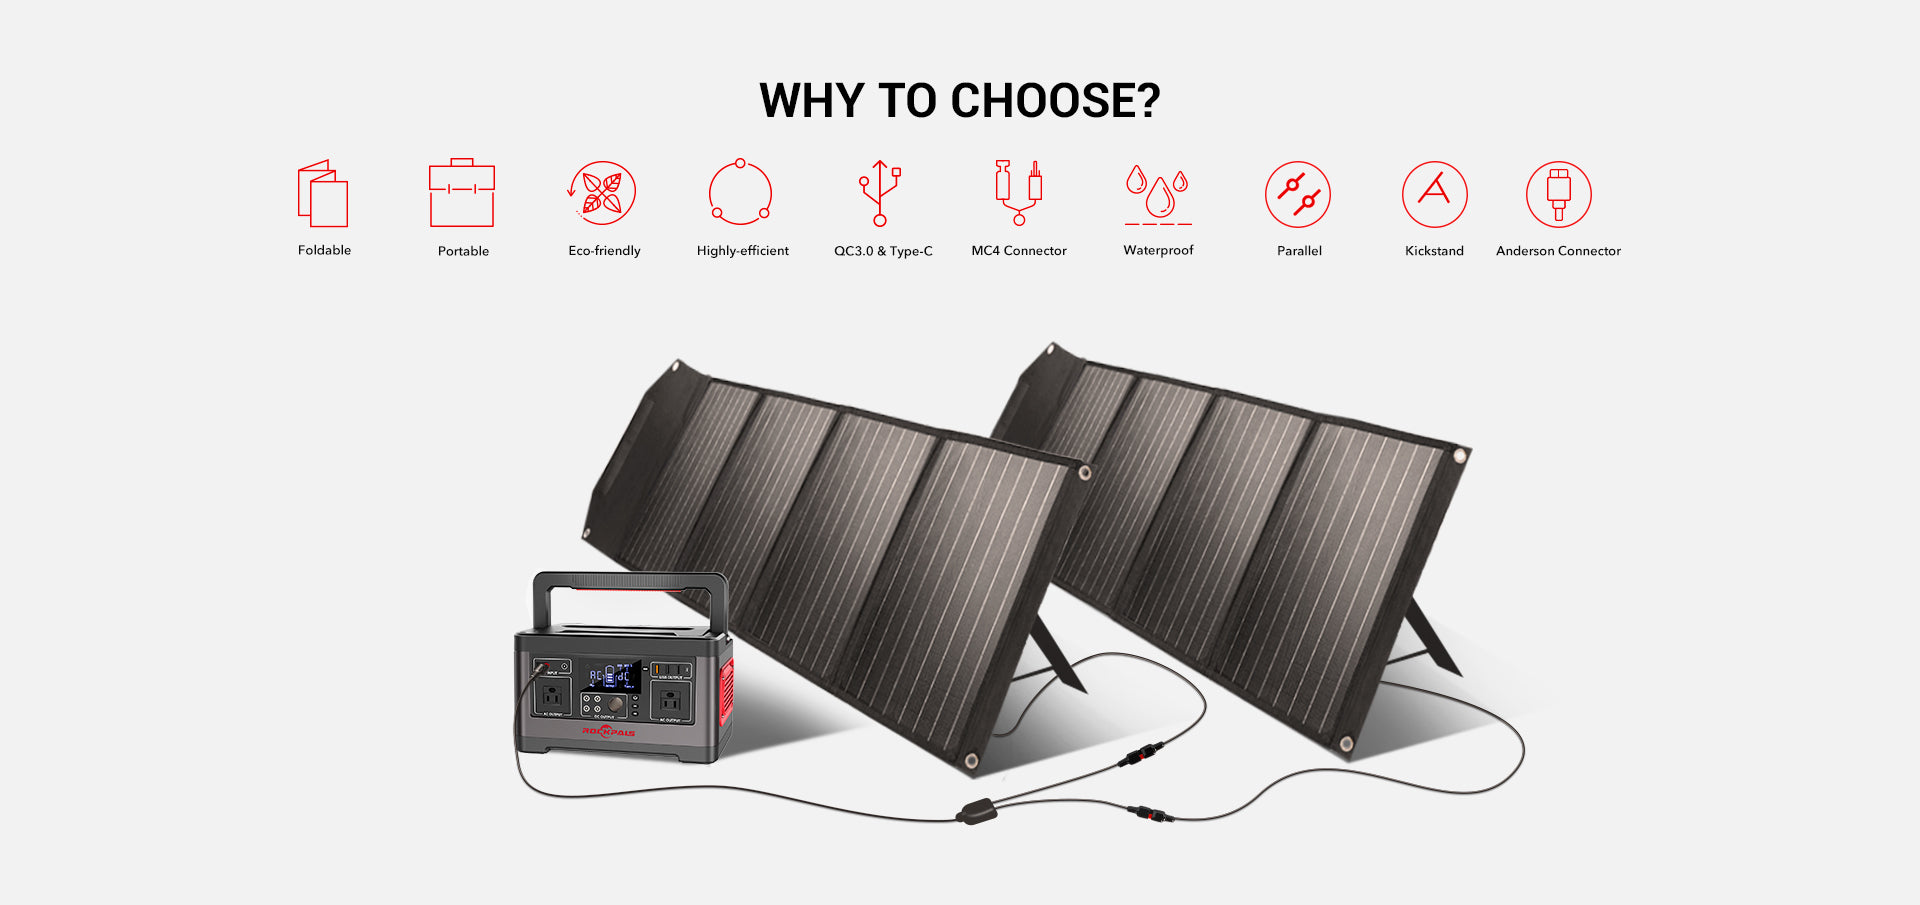 Rockpower 100W Portable Solar Panel Features